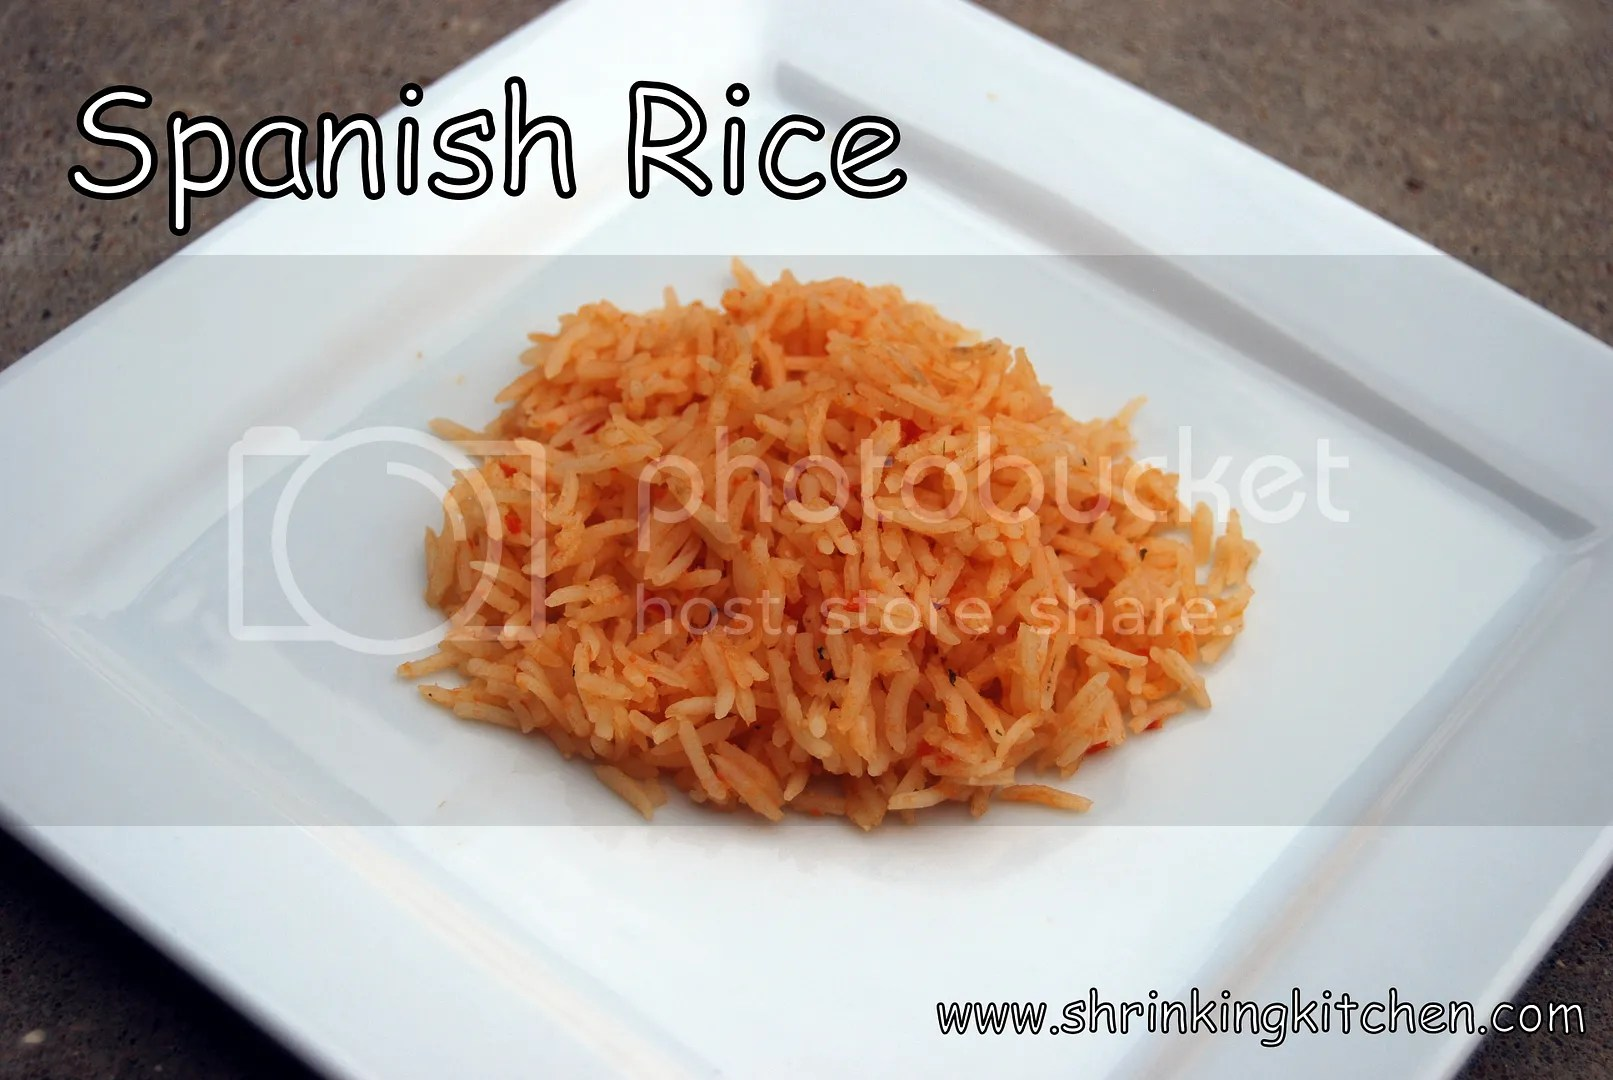 The Original Spanish Rice